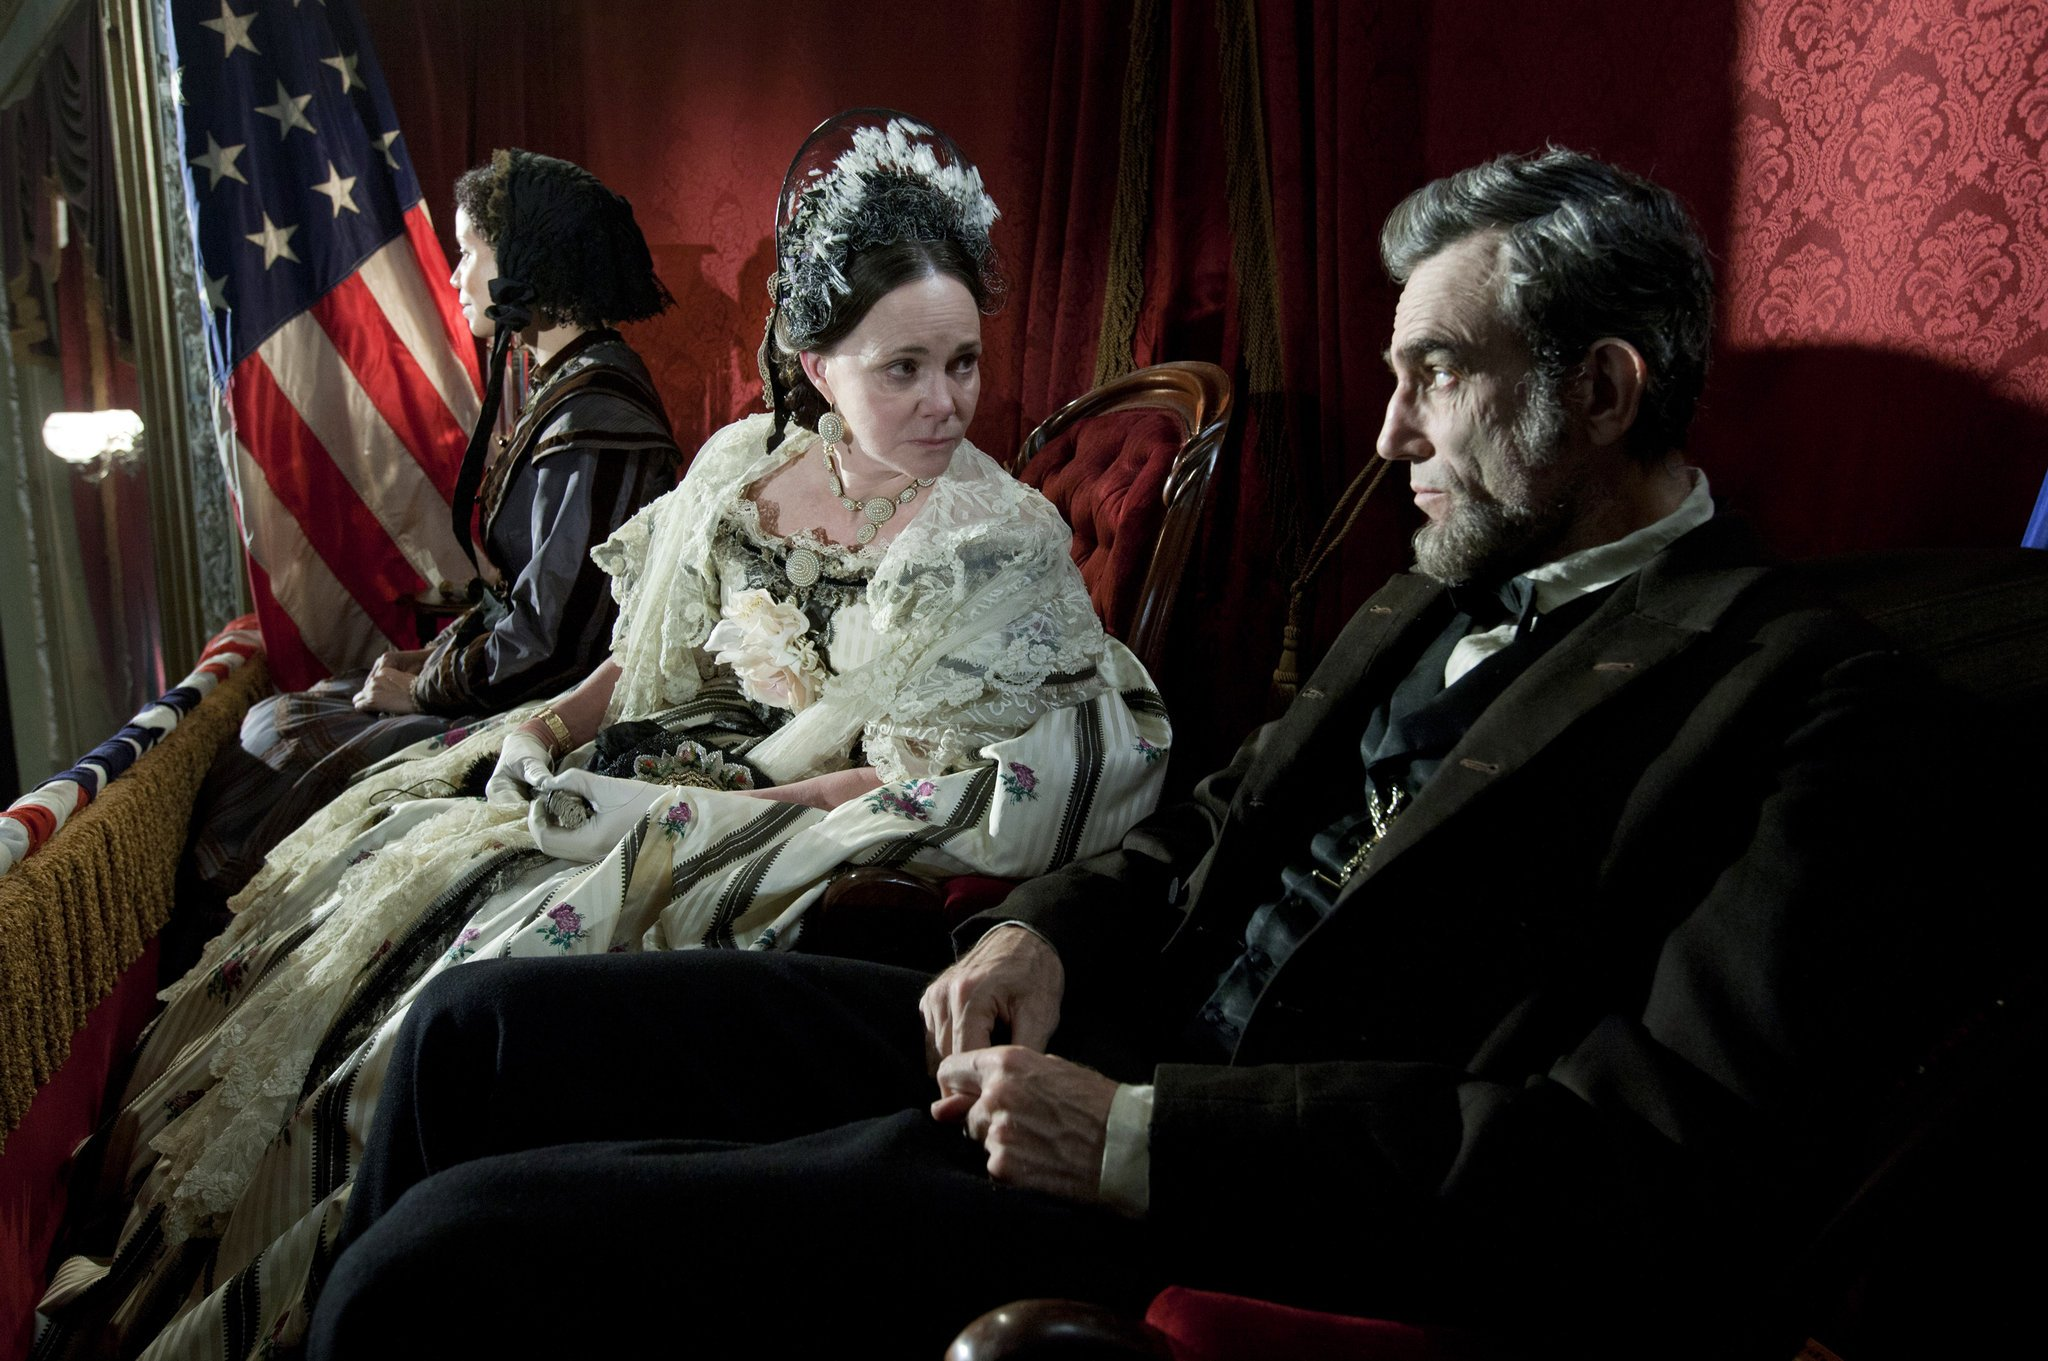 Steven Spielberg makes compelling drama from the statesmanship it took to pass the 13th Amendment to the American Constitution